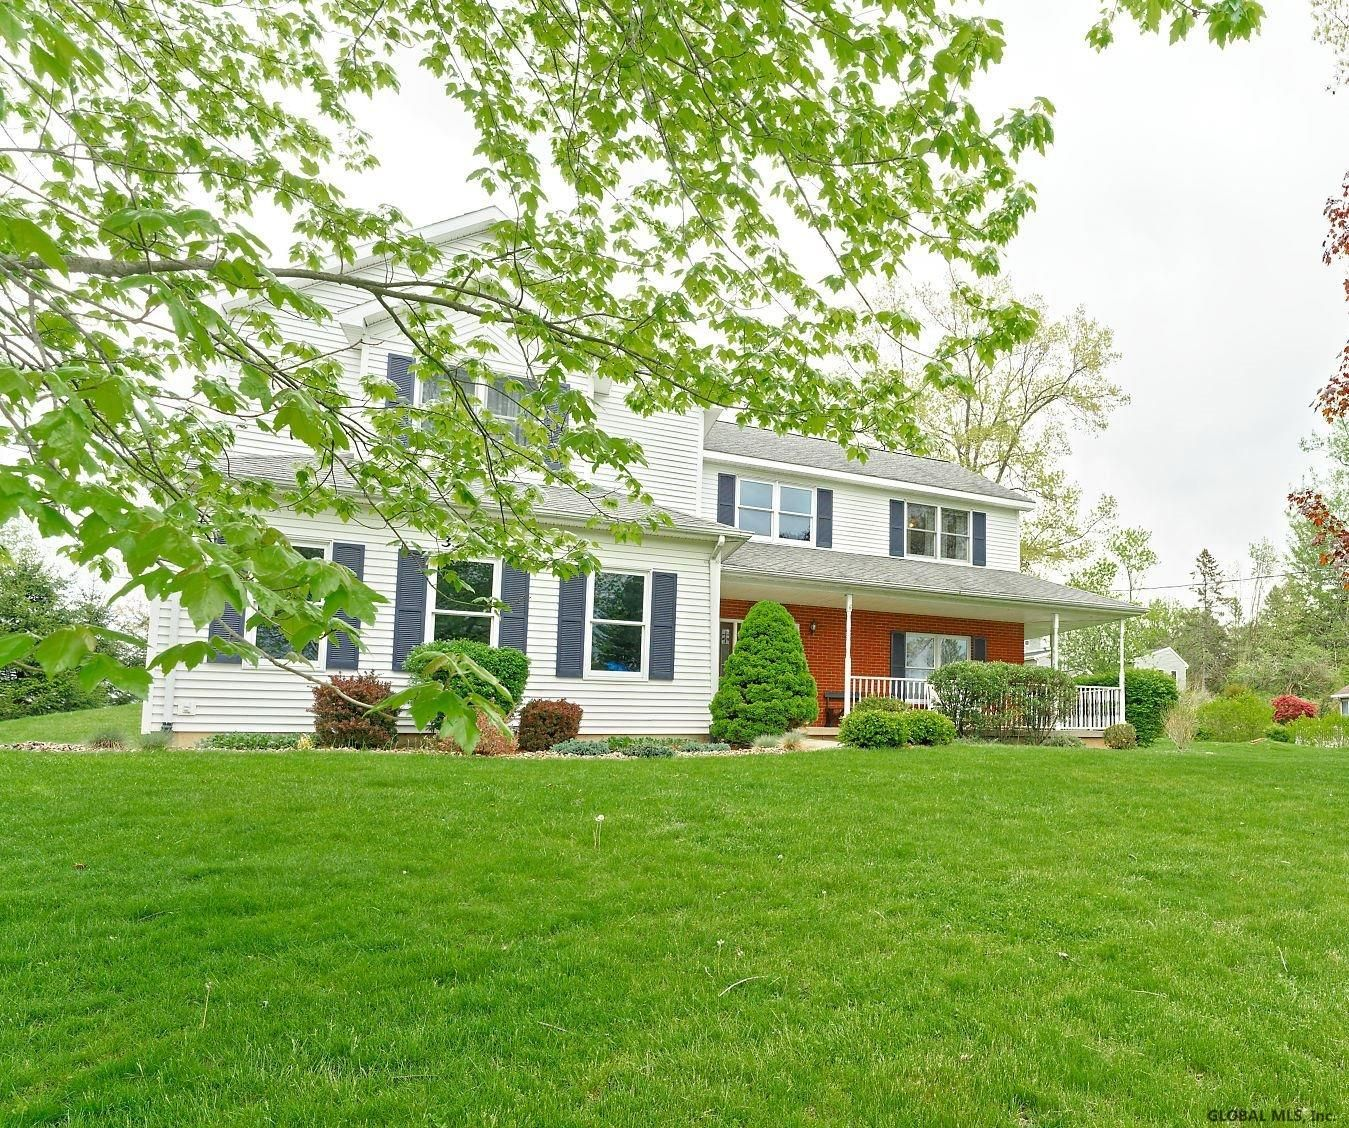 Guilderland Home, NY Real Estate Listing